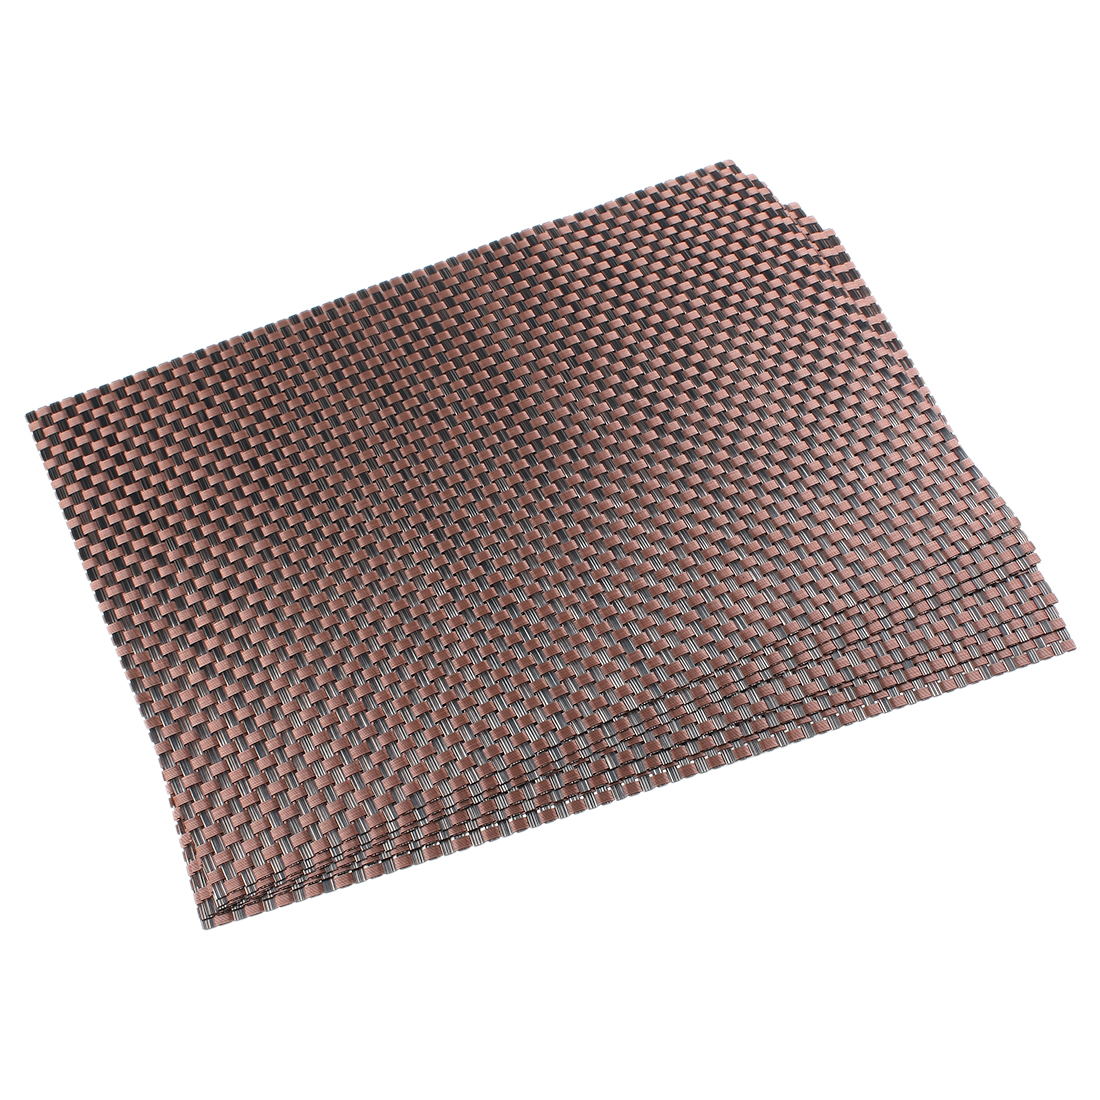 Unique Industries PVC Heat Resistant Table Cup Mat Placem...